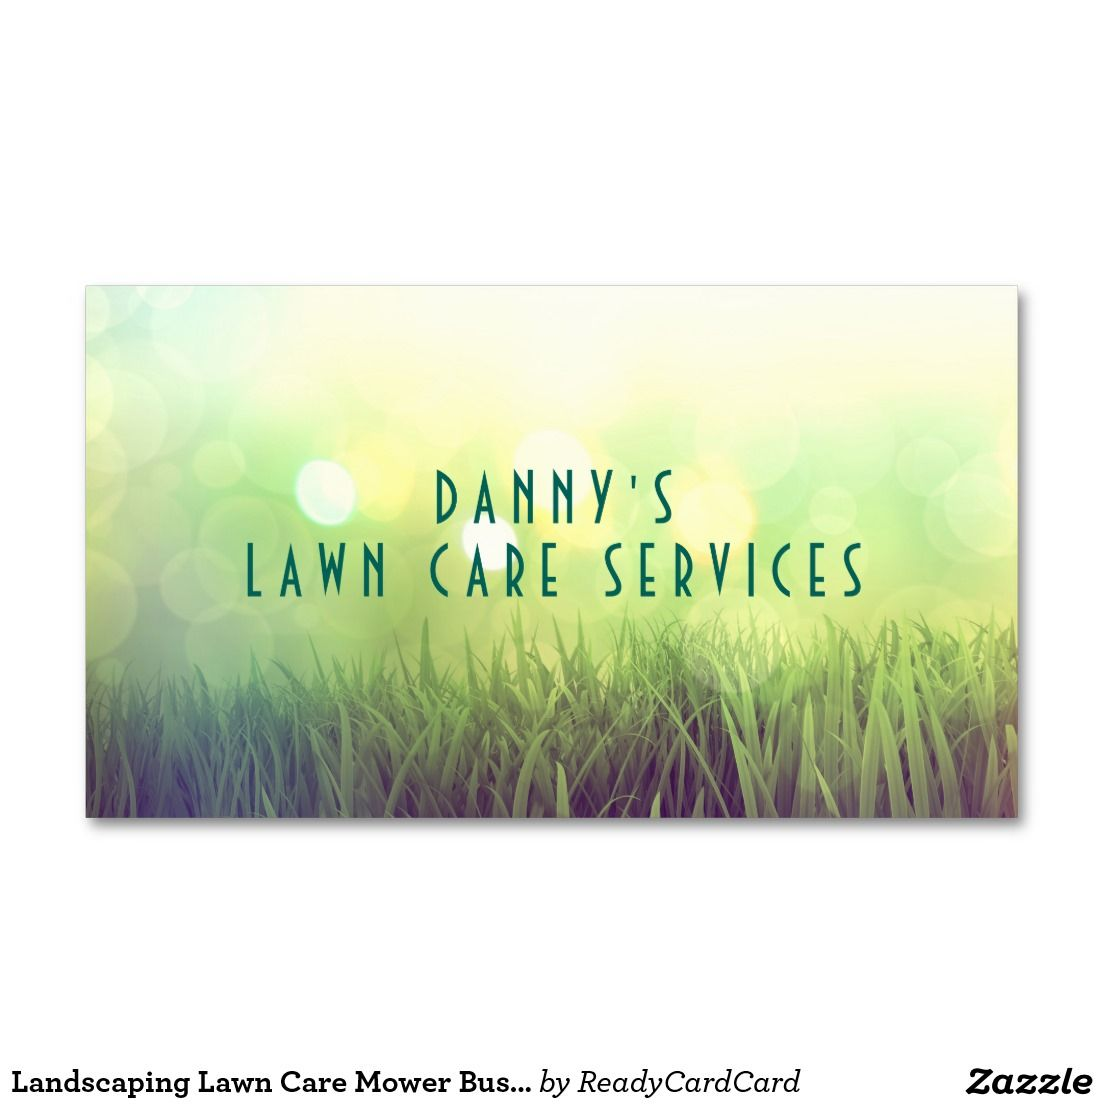 Landscaping lawn care mower business card template big hit landscaping lawn care mower business card template colourmoves Gallery